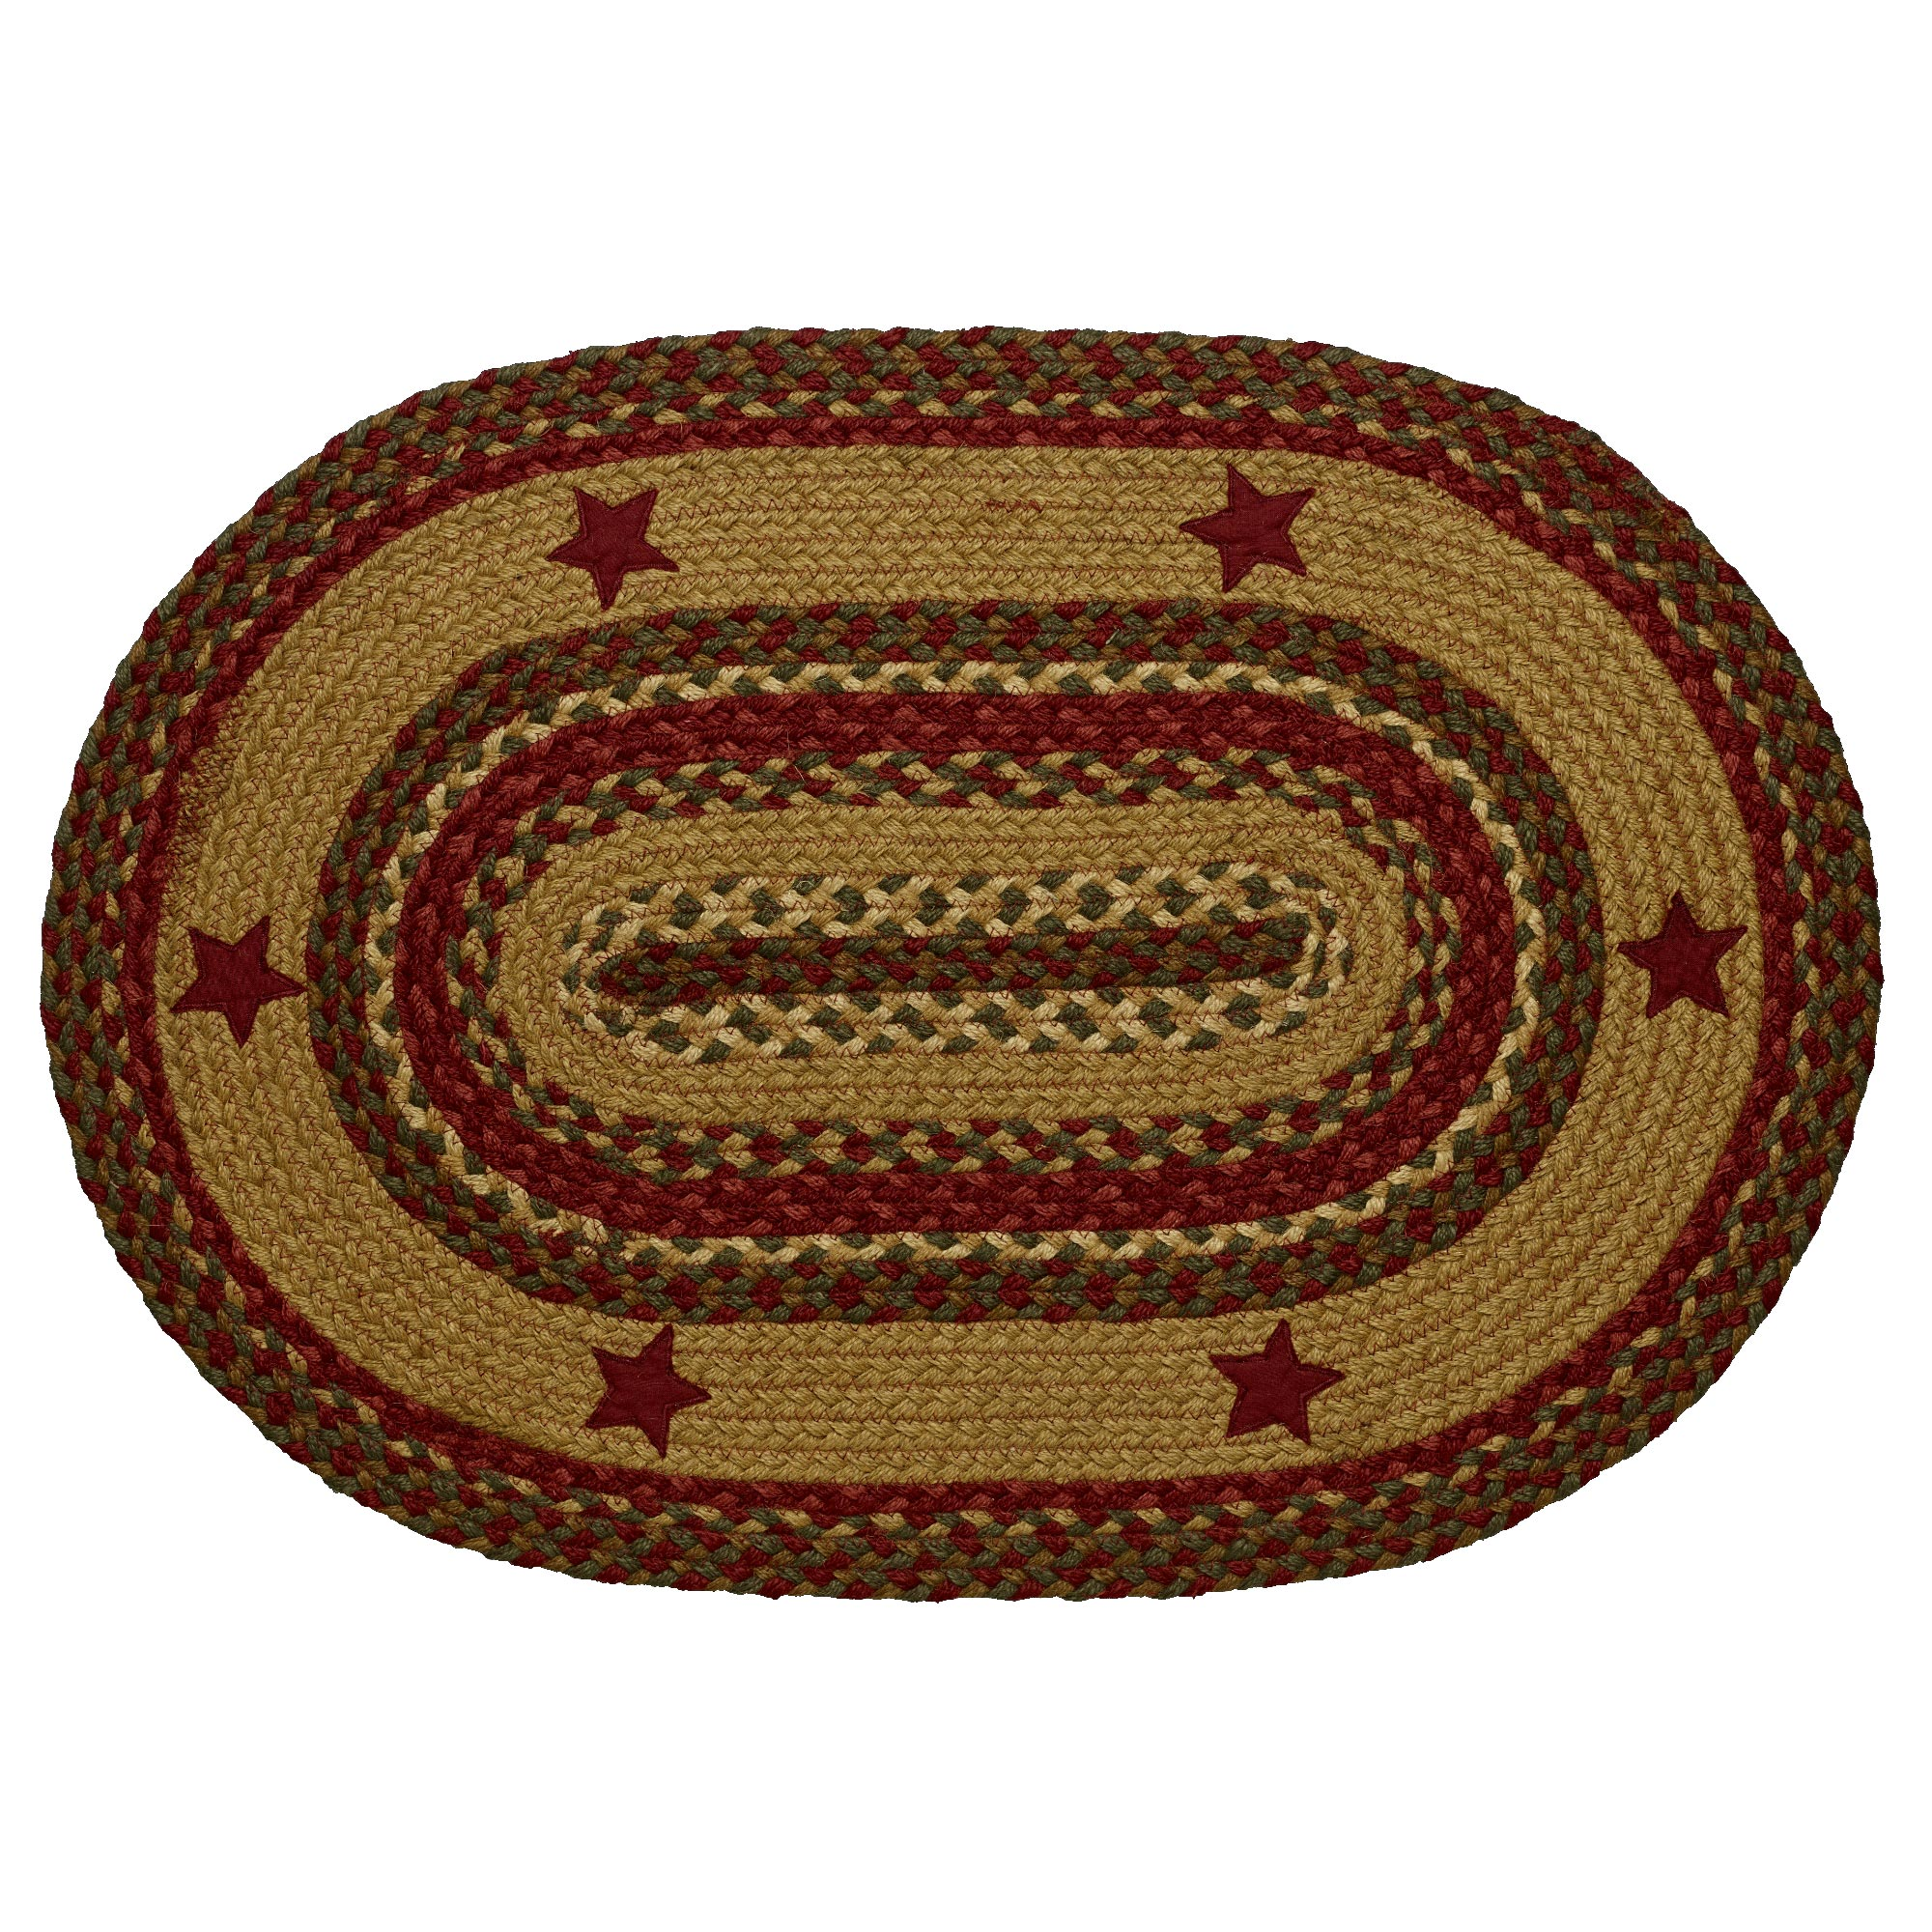 Braided Rug Cinnamon Star Jute Country Primitive IHF